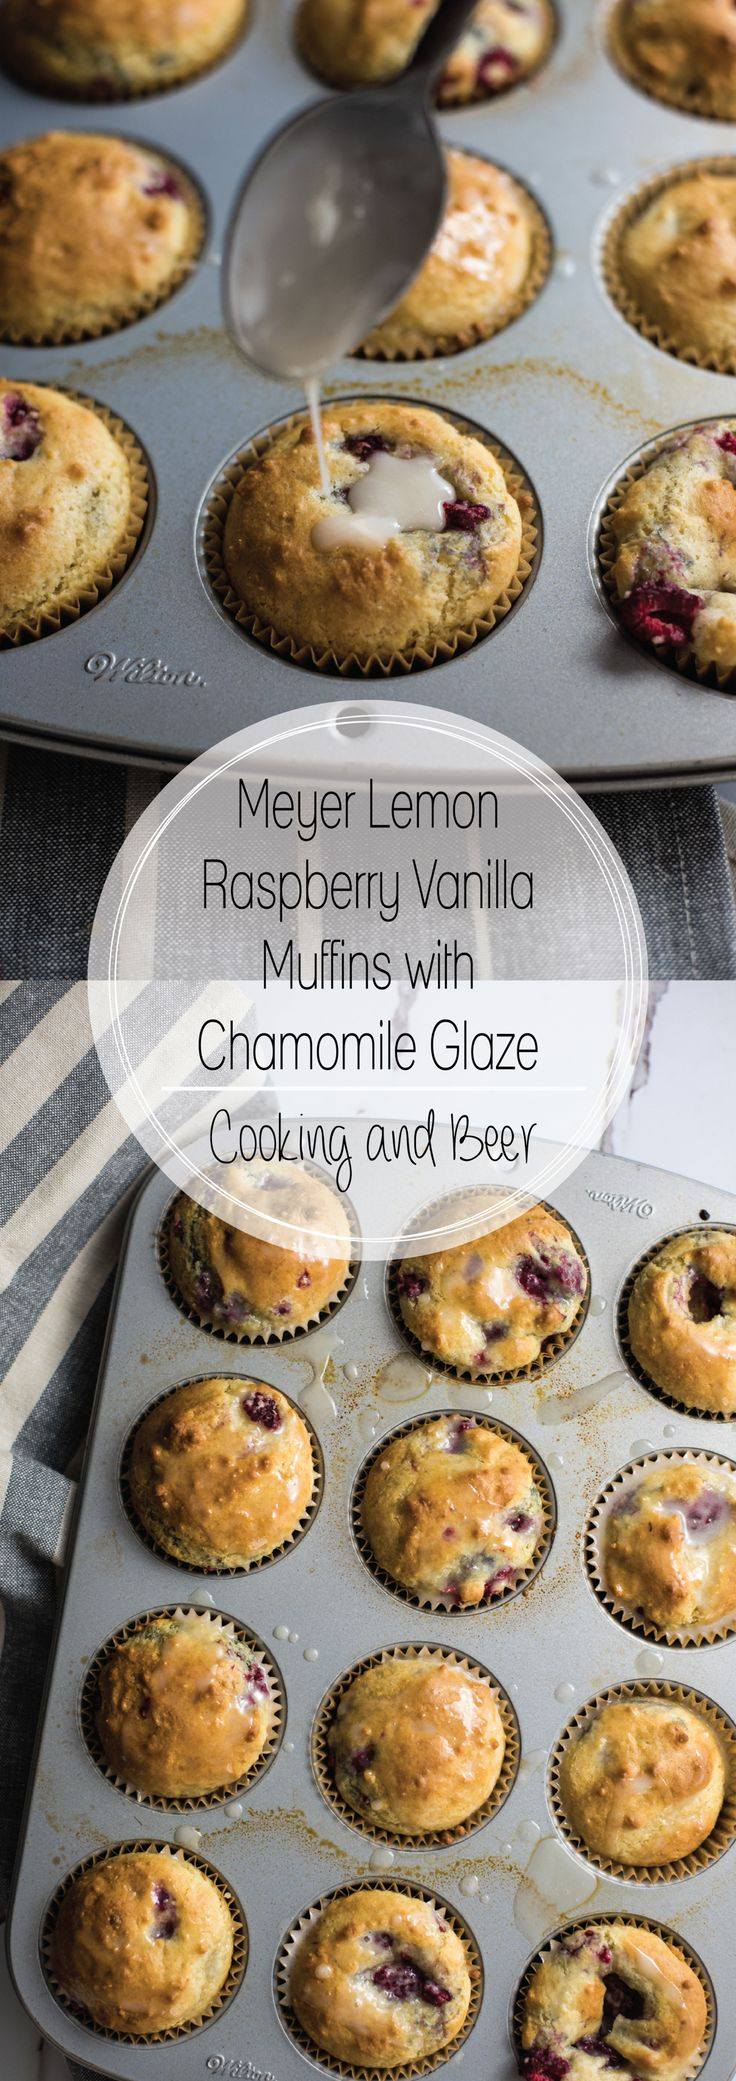 Meyer lemon raspberry vanilla muffins with chamomile glaze are the perfect recipe to whip up on Sunday morning. They are bursting with flavor!